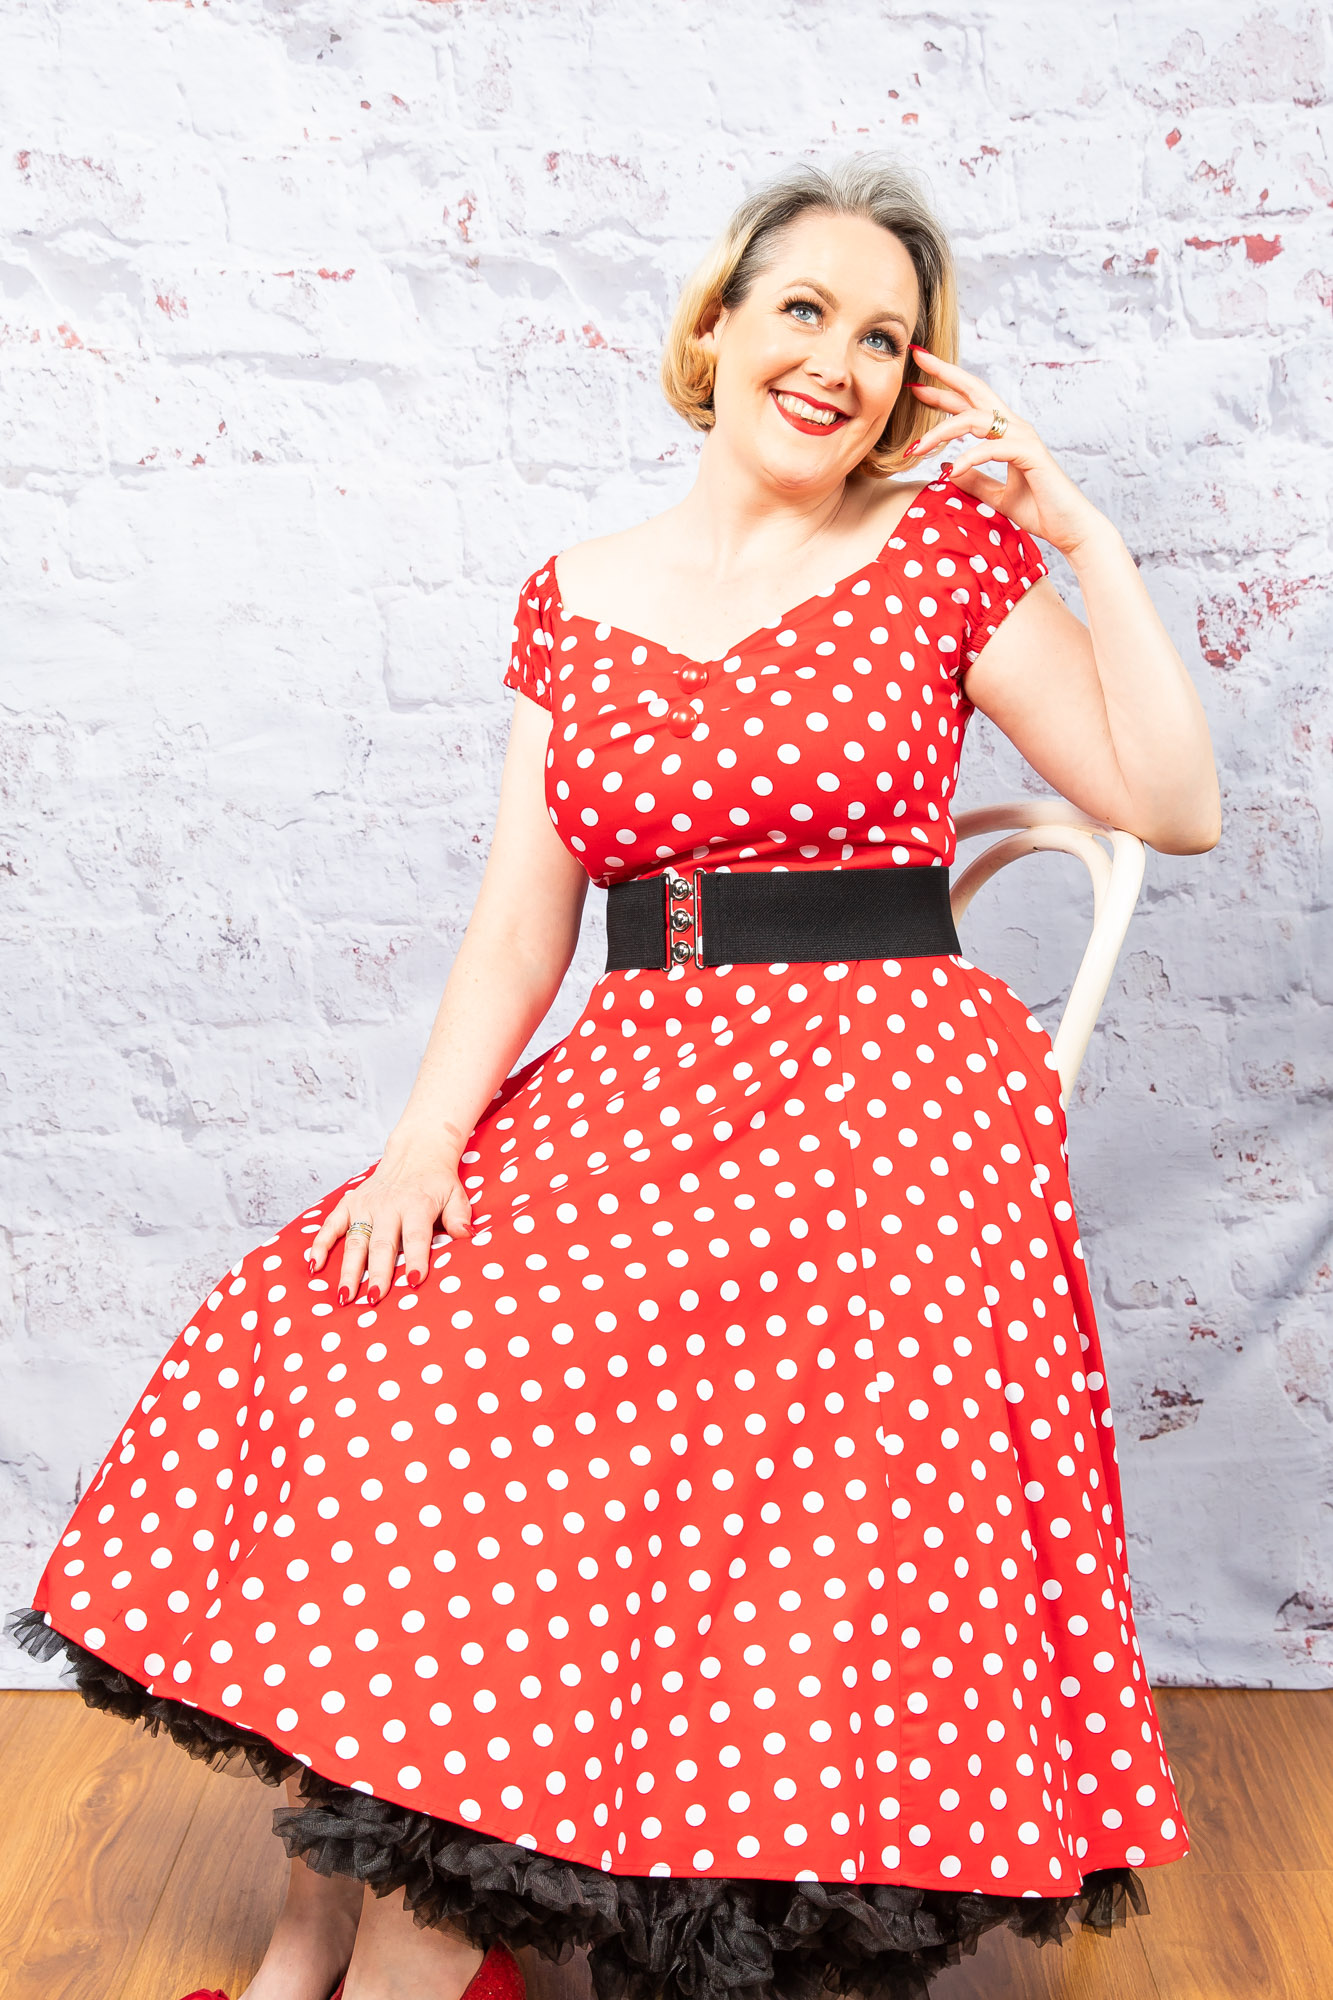 4afd1c3f297f4 Collectif - Dolores Swing Dress In Red Polka Dots - Miss Samantha's ...